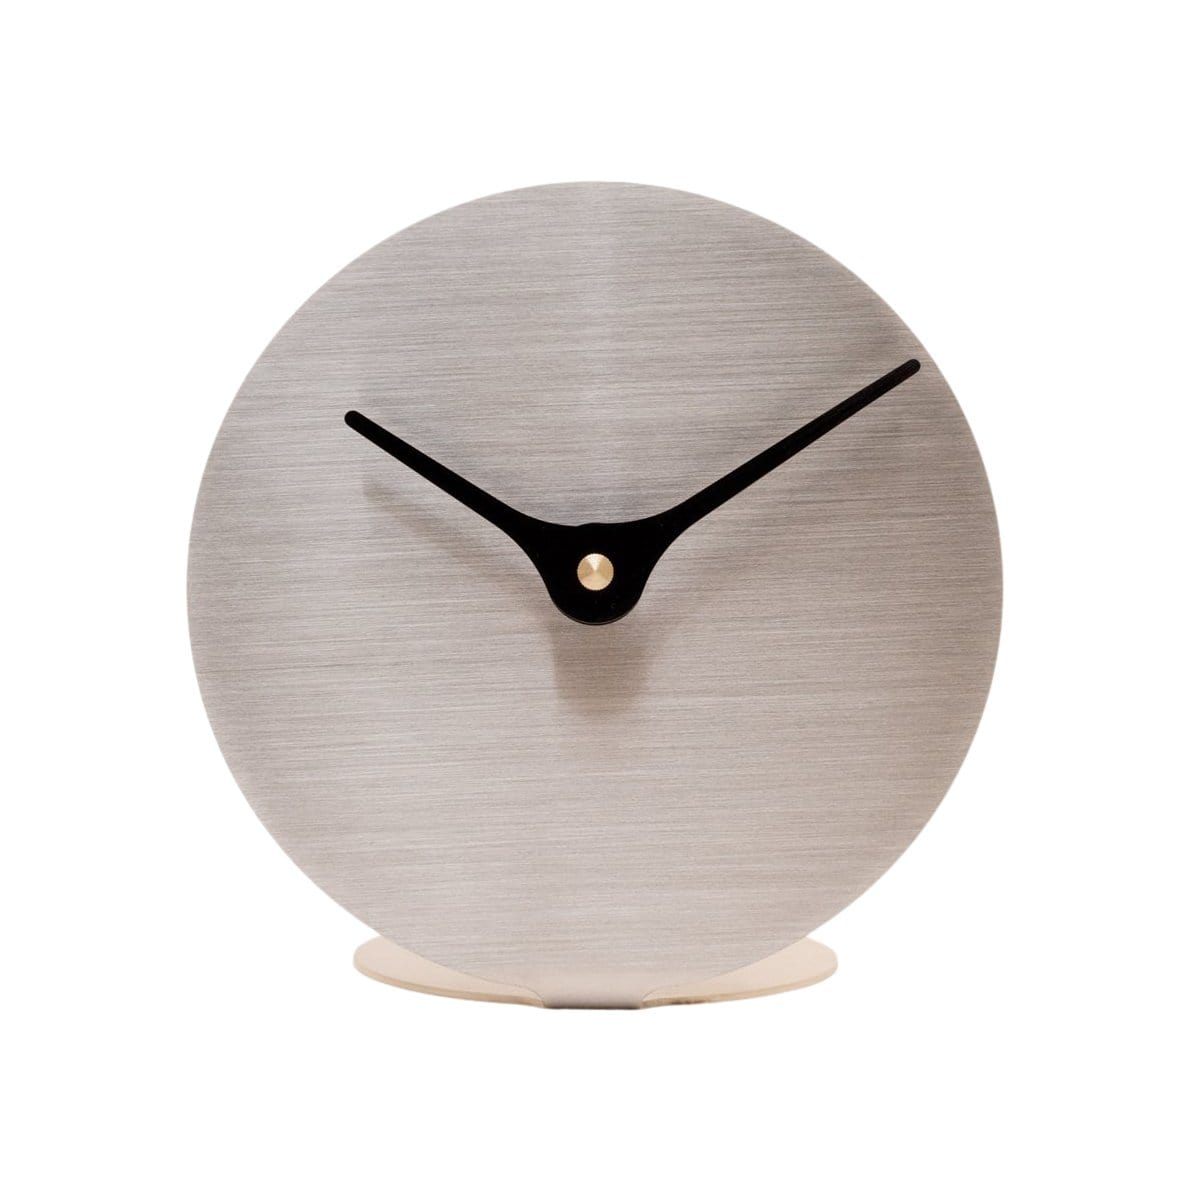 Nordahl Konings Clocks Lilje Stainless Steel Table Clock